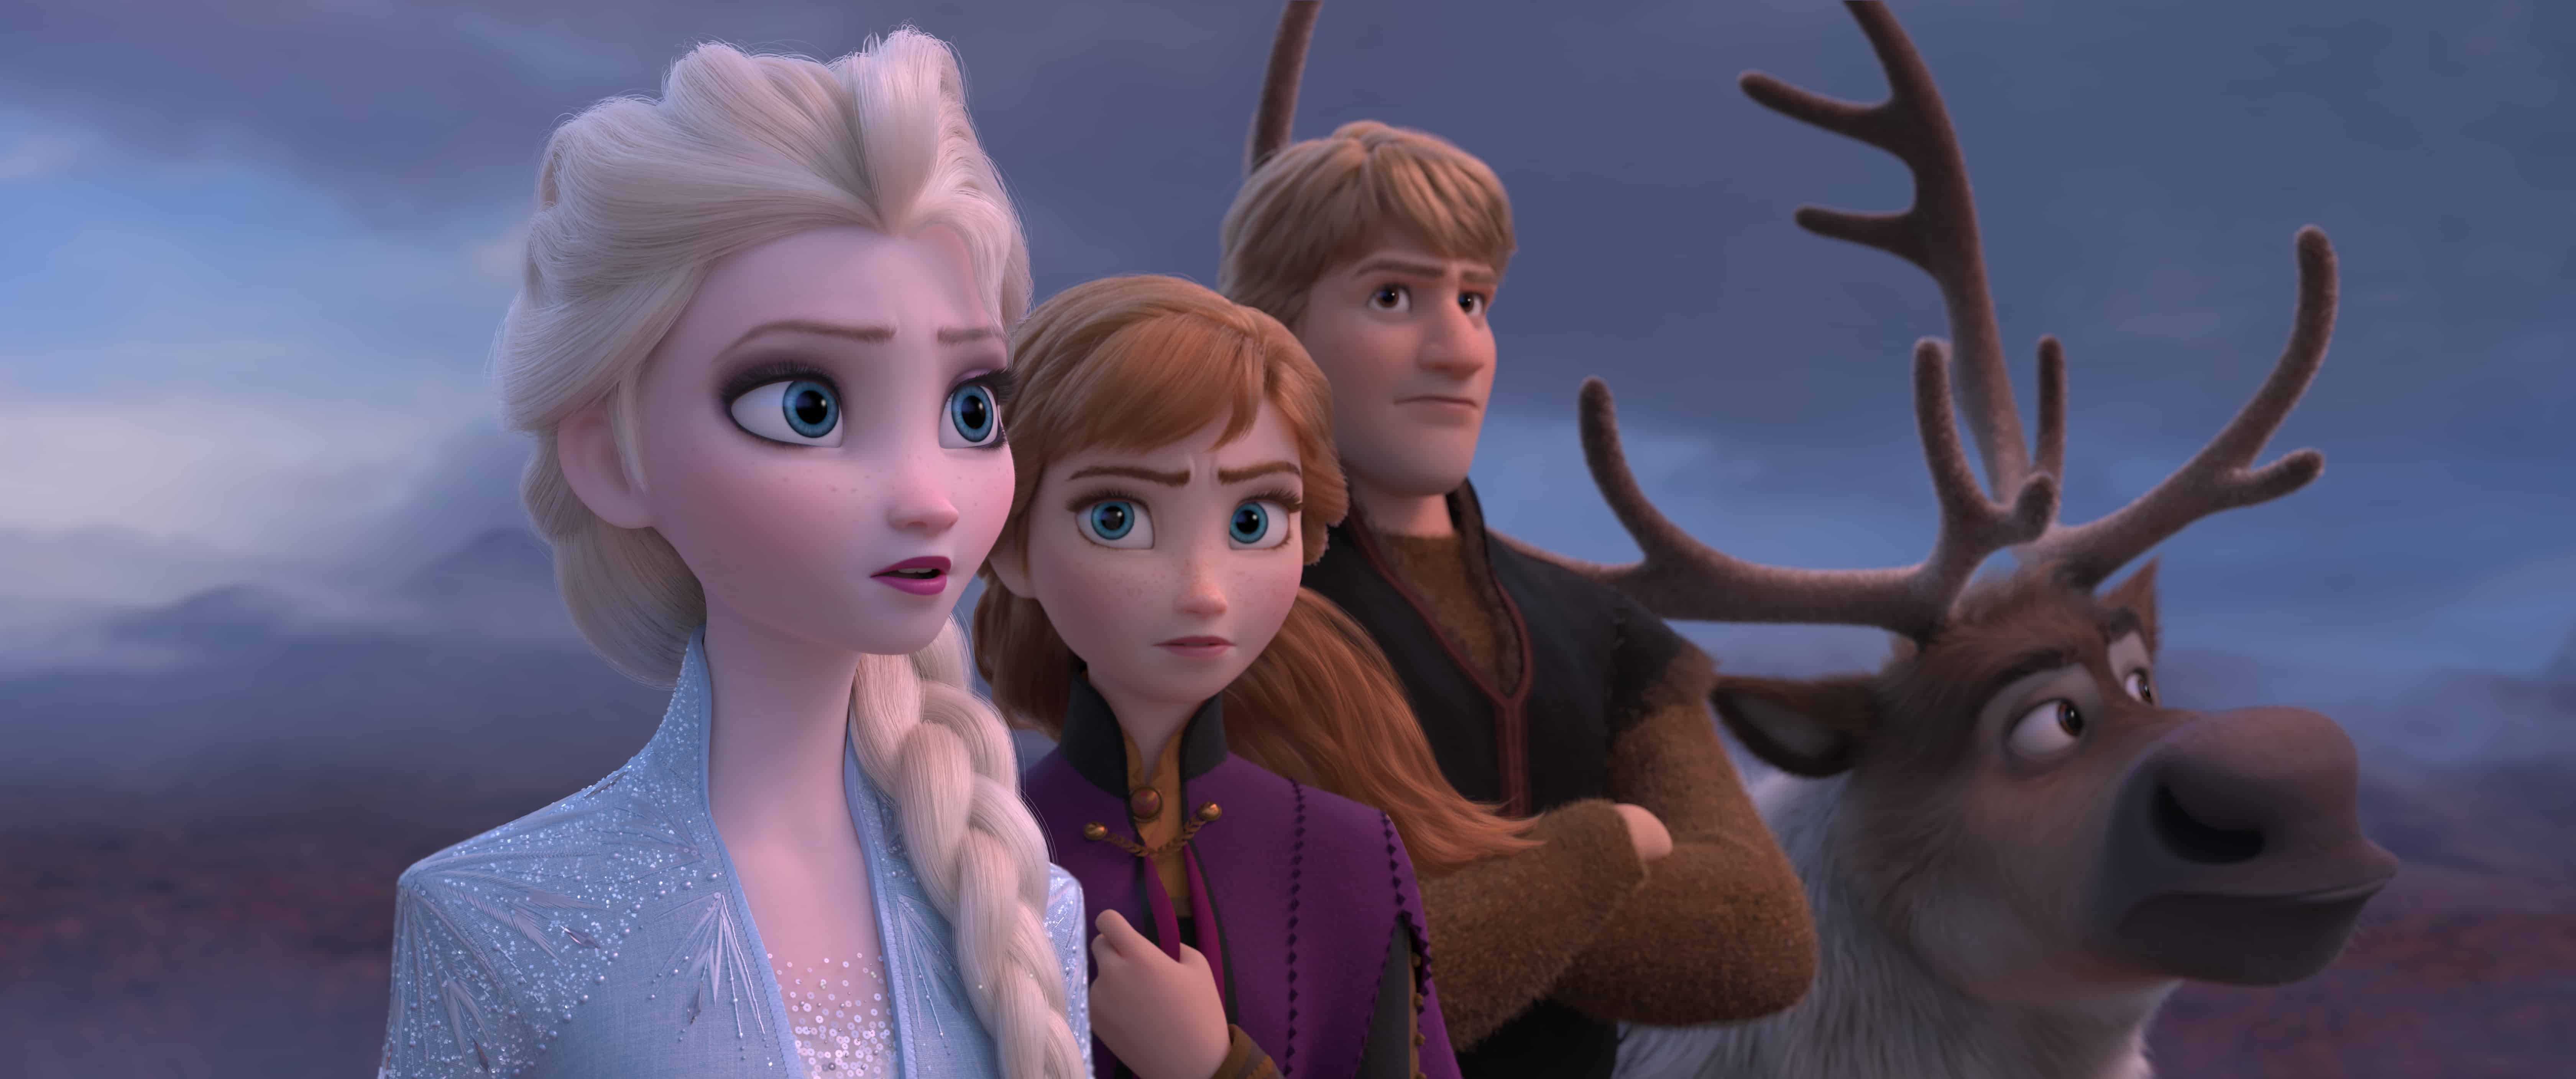 Frozen 2 ©2019 Disney. All Rights Reserved.